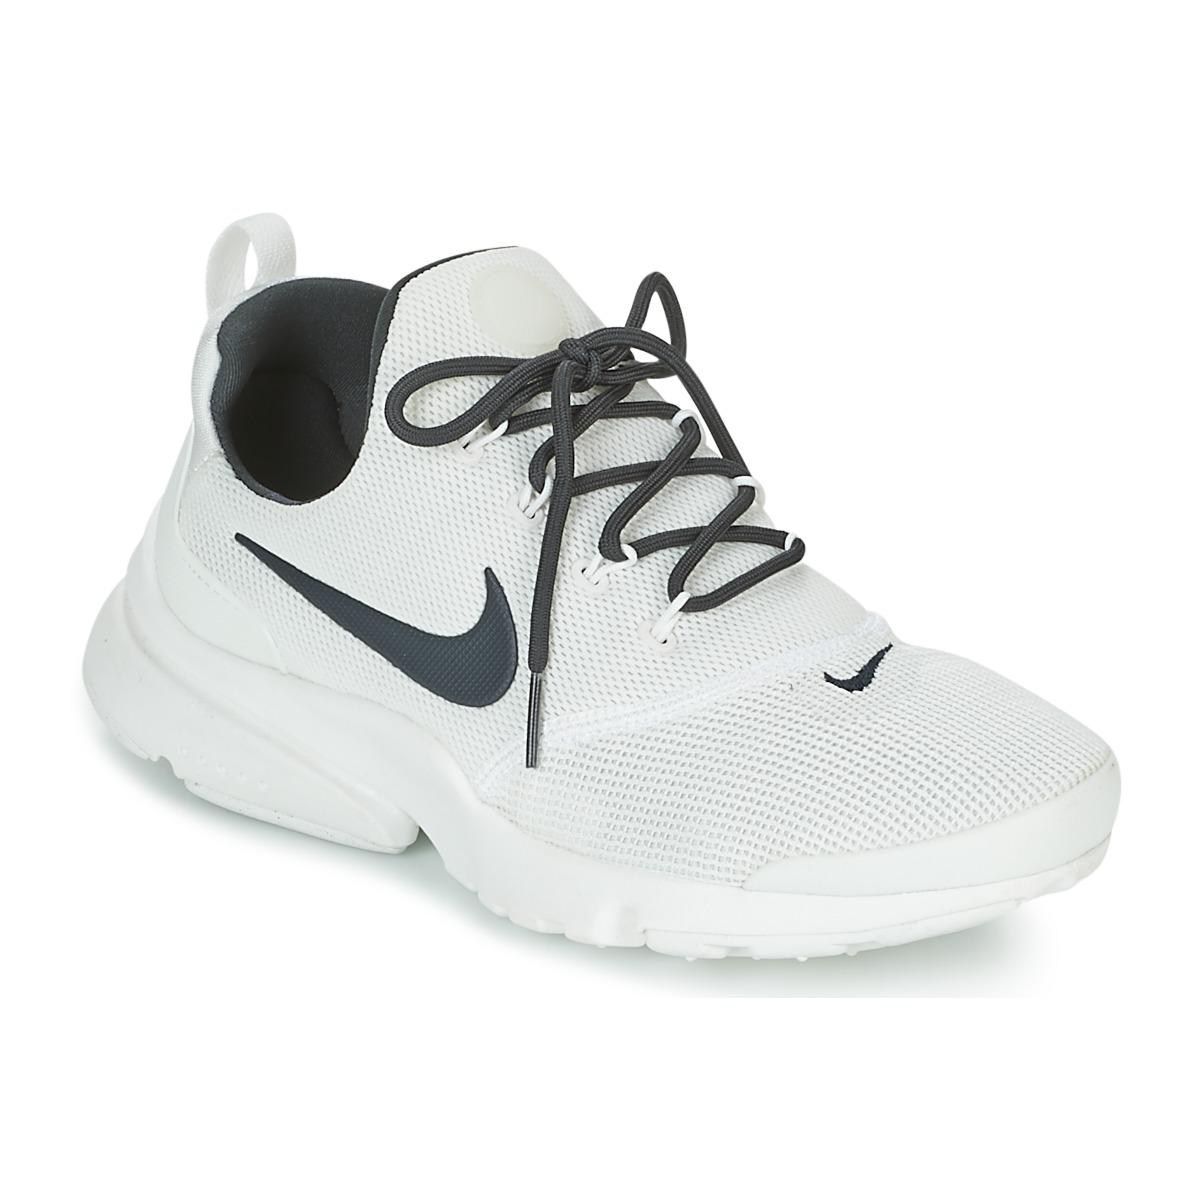 Nike PRESTO FLY W women's Shoes (Trainers) in Discount Official From China prYtvU4VQ